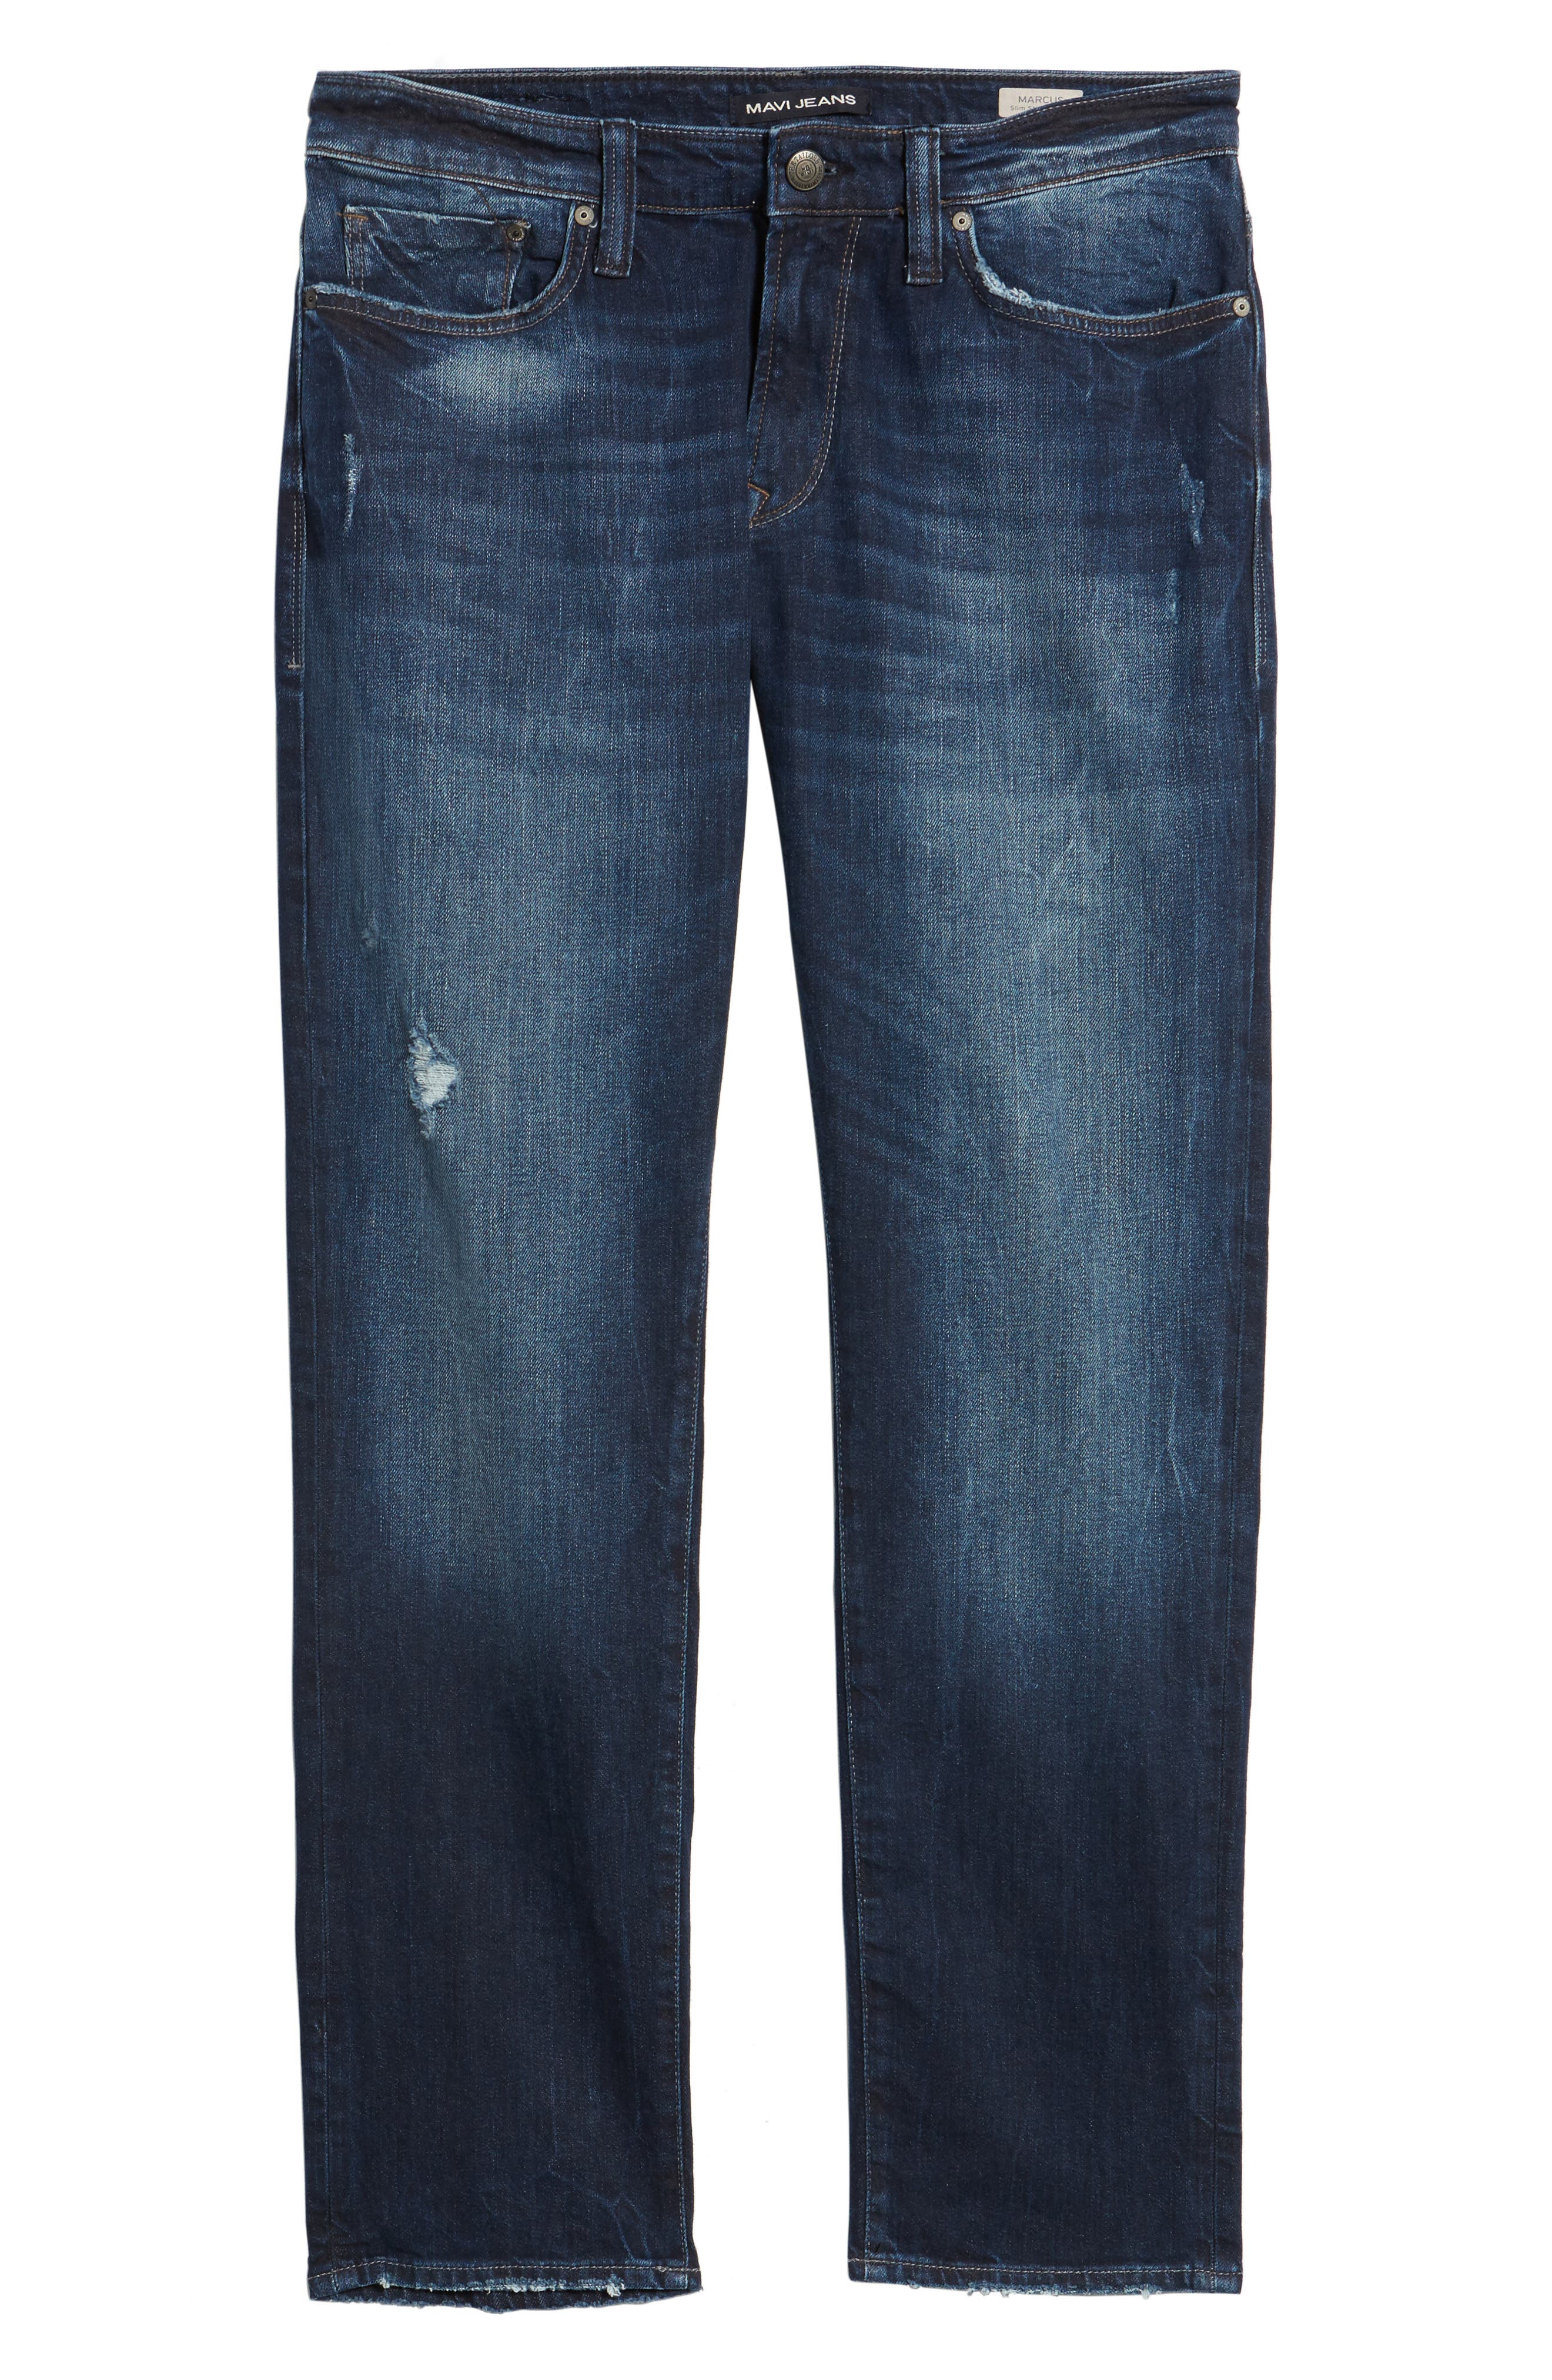 Marcus Slim Straight Leg Jeans,                             Alternate thumbnail 6, color,                             401